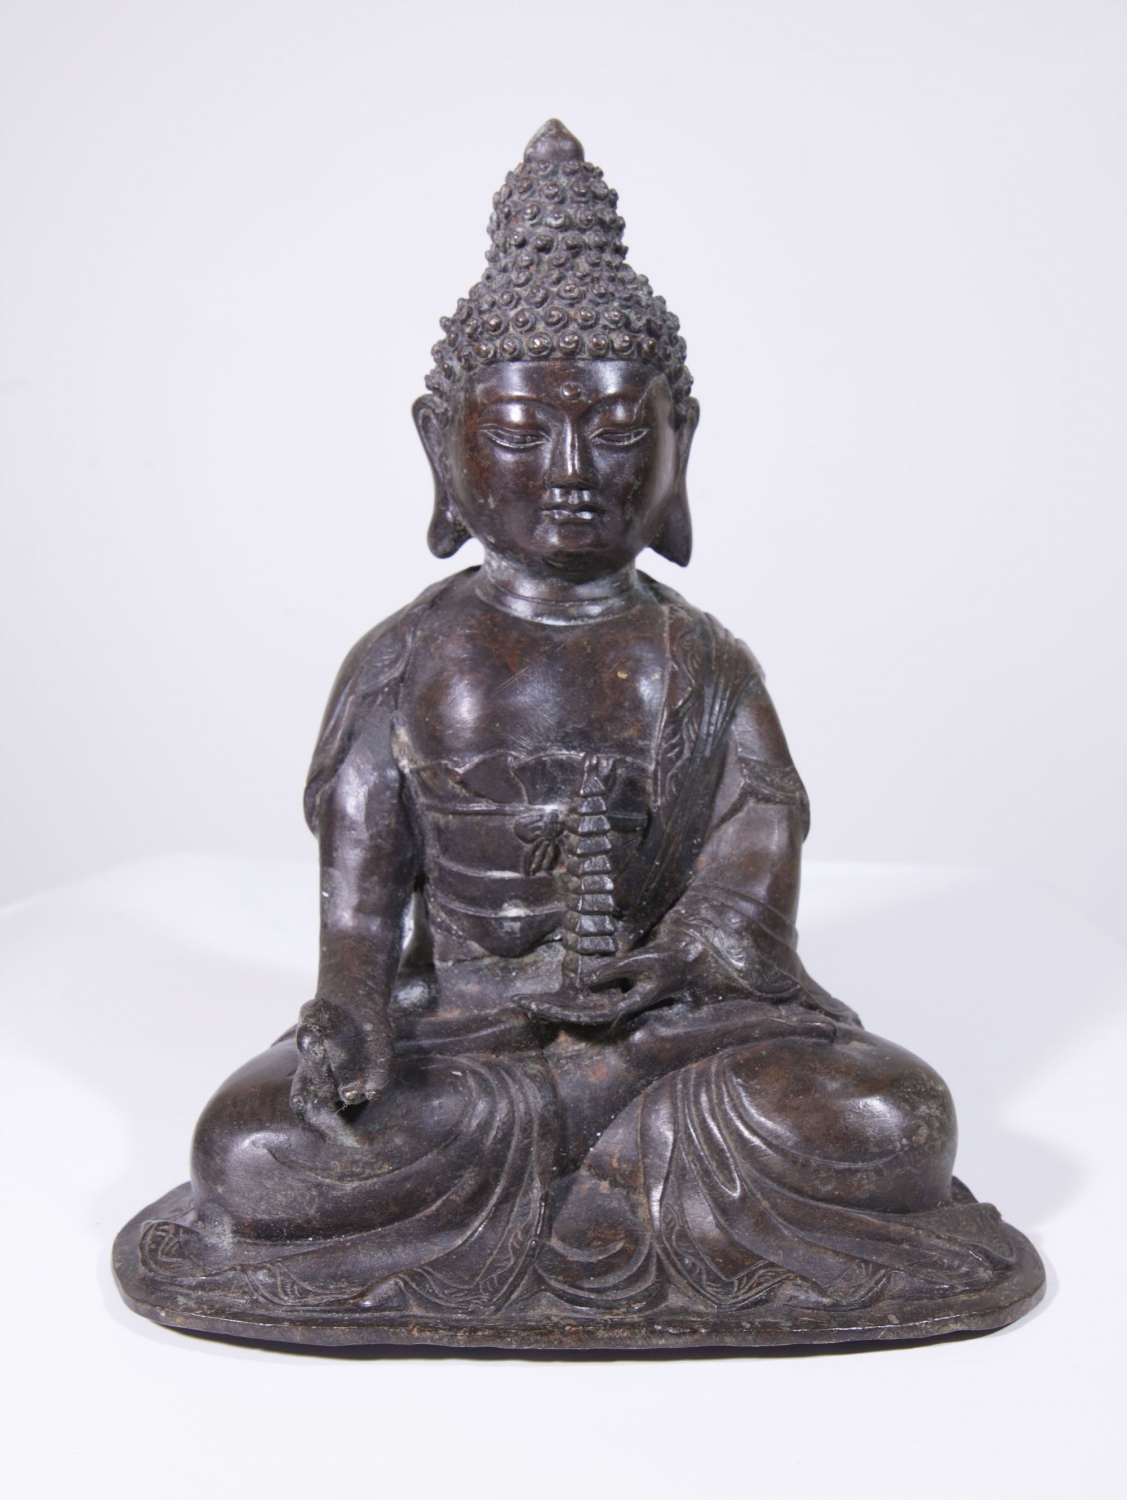 bronze buddha statue 10 008 60 african art masks and statues from africa. Black Bedroom Furniture Sets. Home Design Ideas